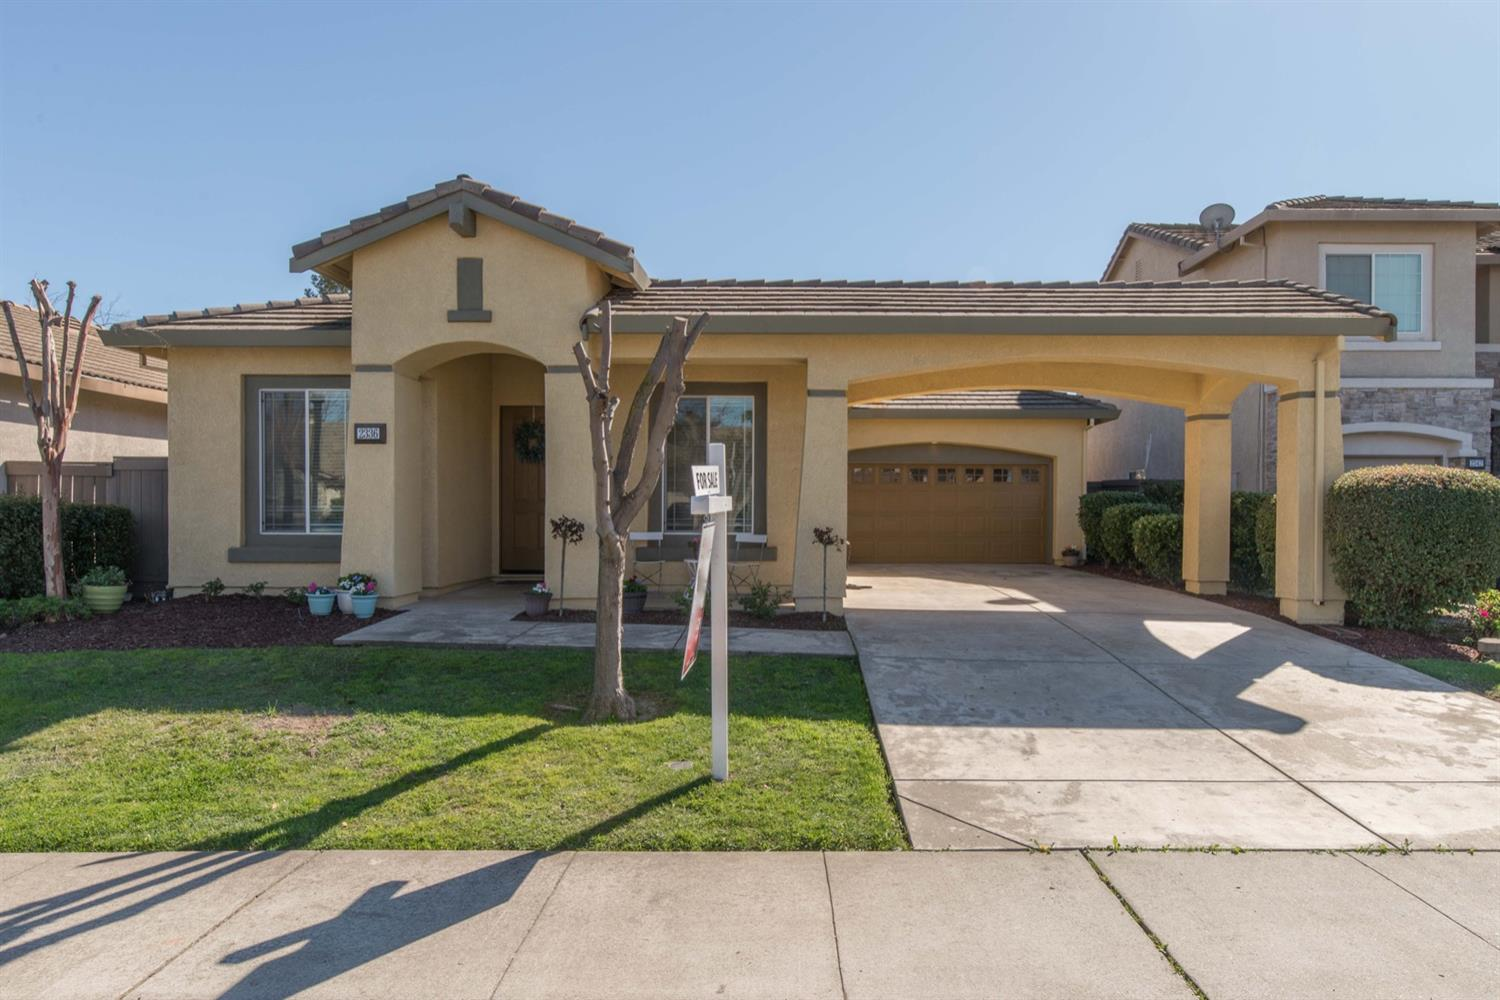 Beautiful single story in Natomas Park! Great floor plan with hand scraped wood flooring throughout main living area. Open concept kitchen with Butler's pantry, large great room with dine in kitchen nook. Includes membership to the Club of Natomas which features 3 swimming pools, a cafe, gym and childcare.